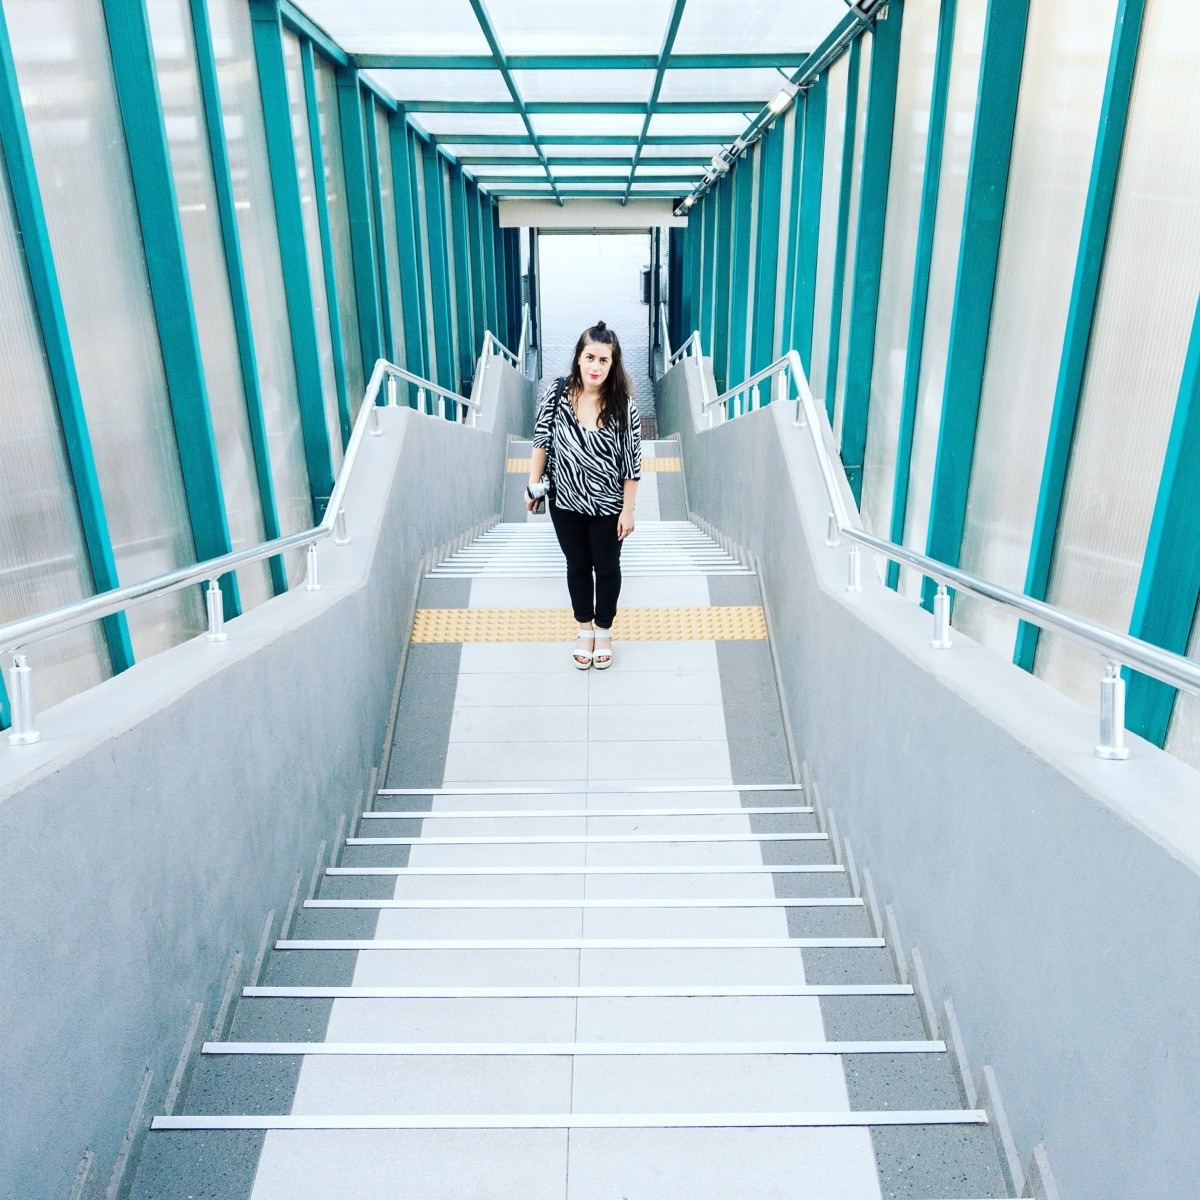 The Girl and the Beauty of Industrial Buildings